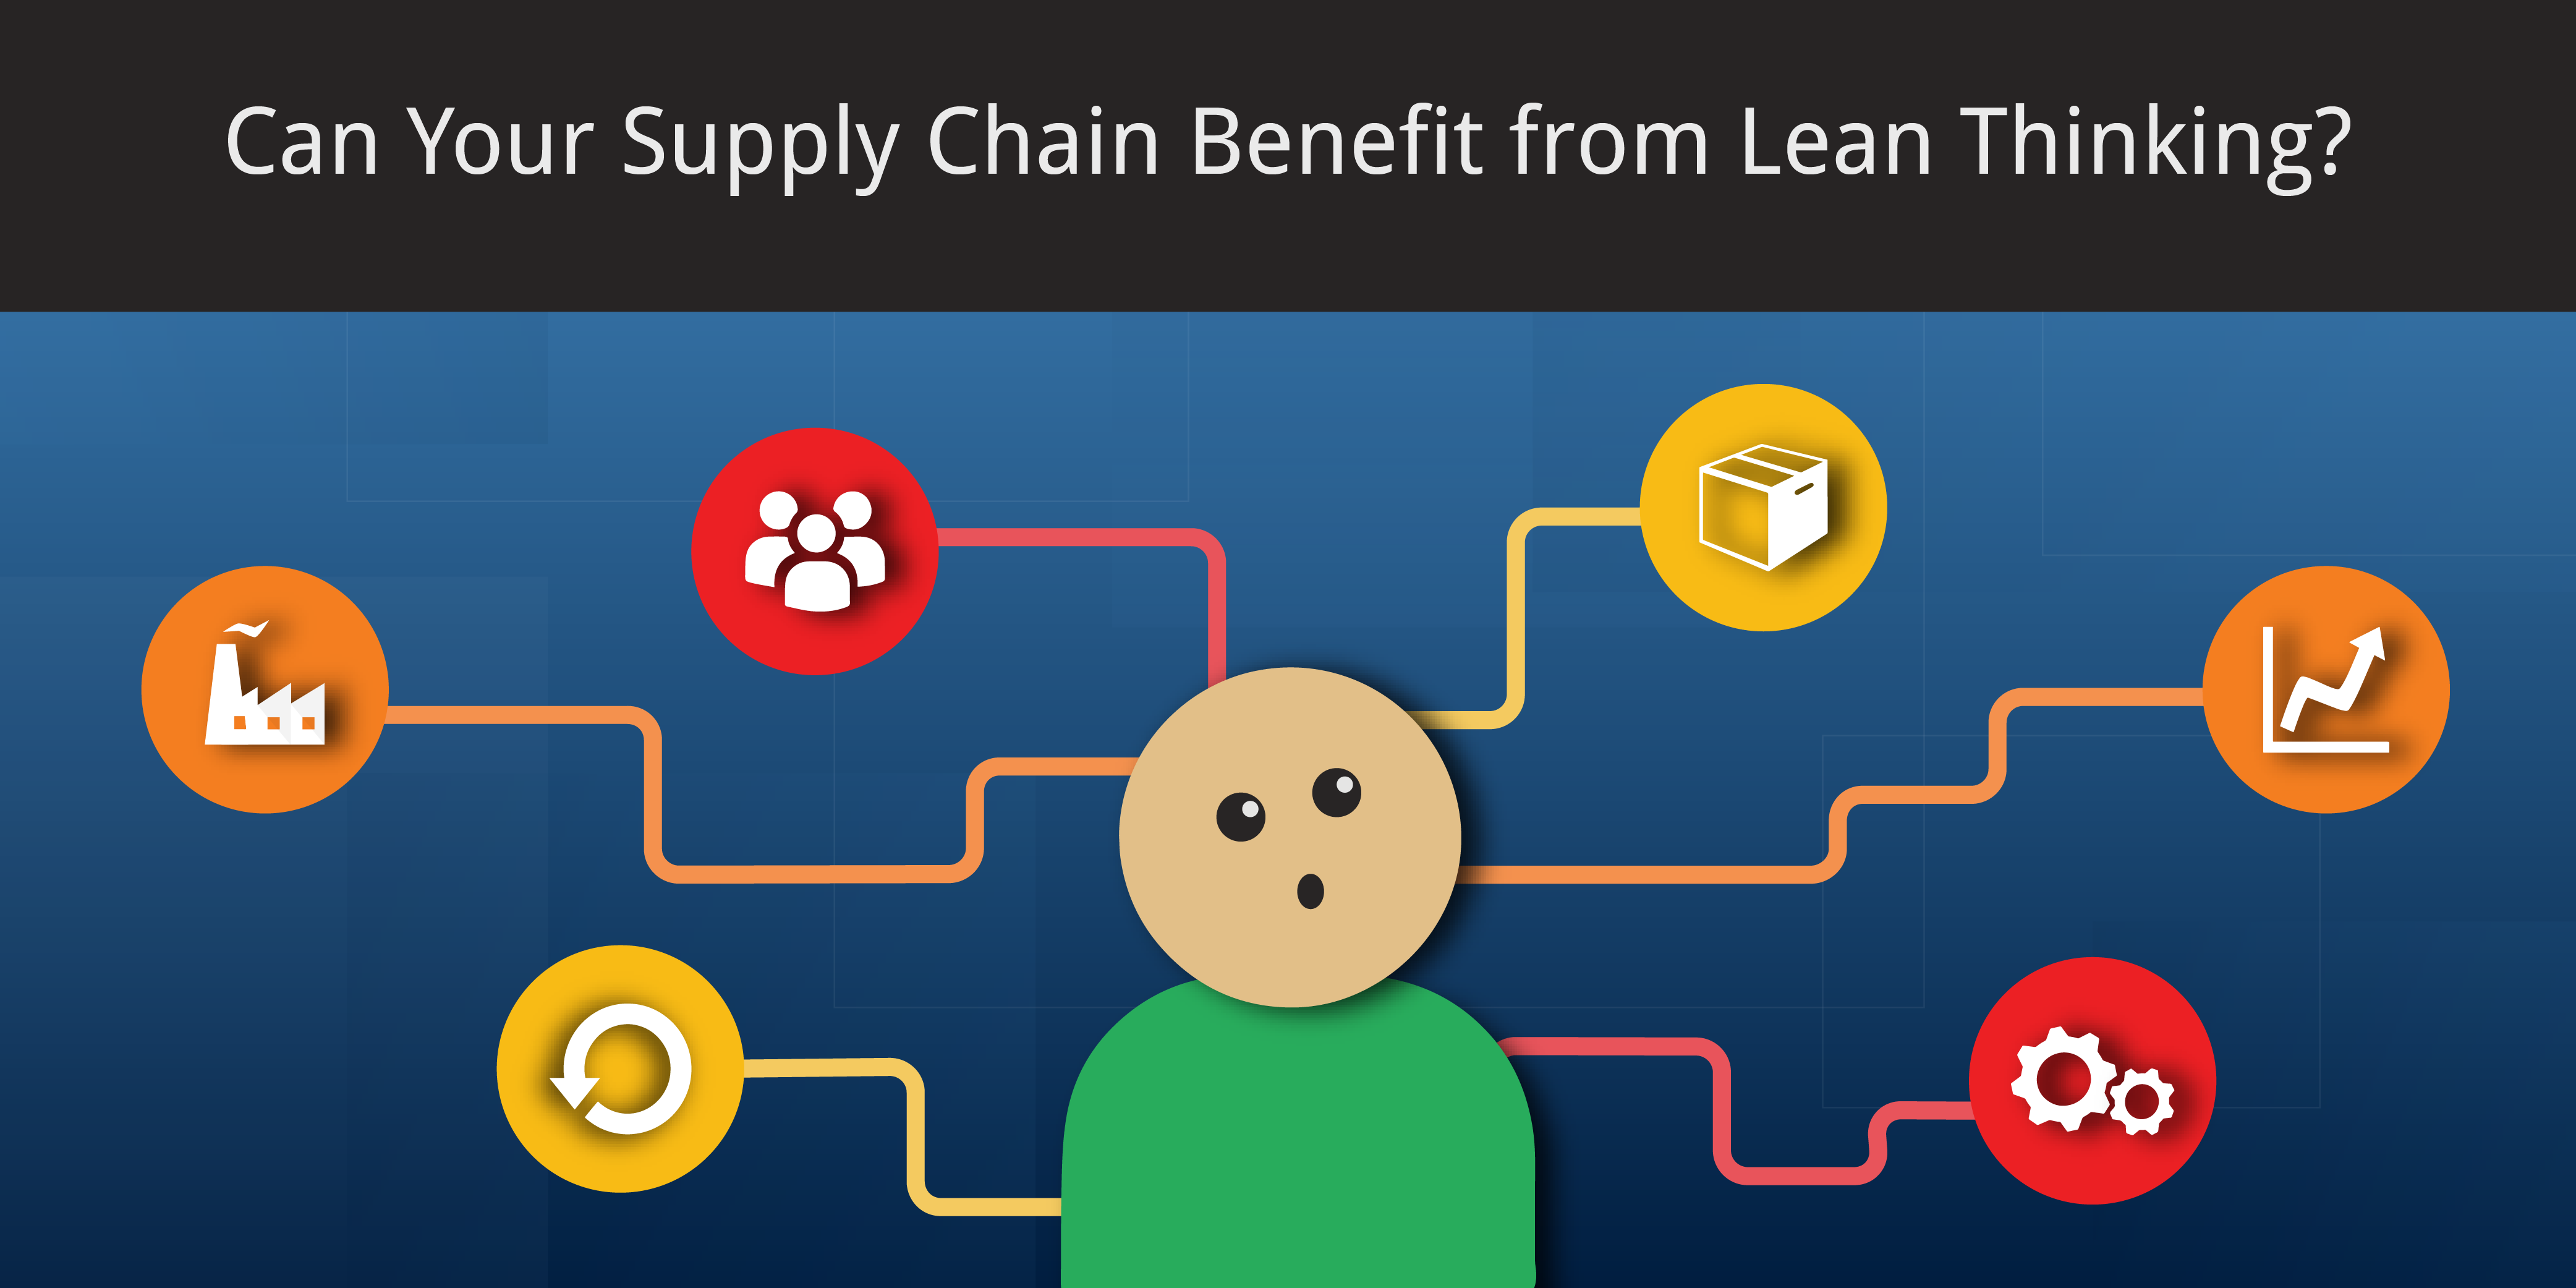 Leaning Thinking Supply Chain